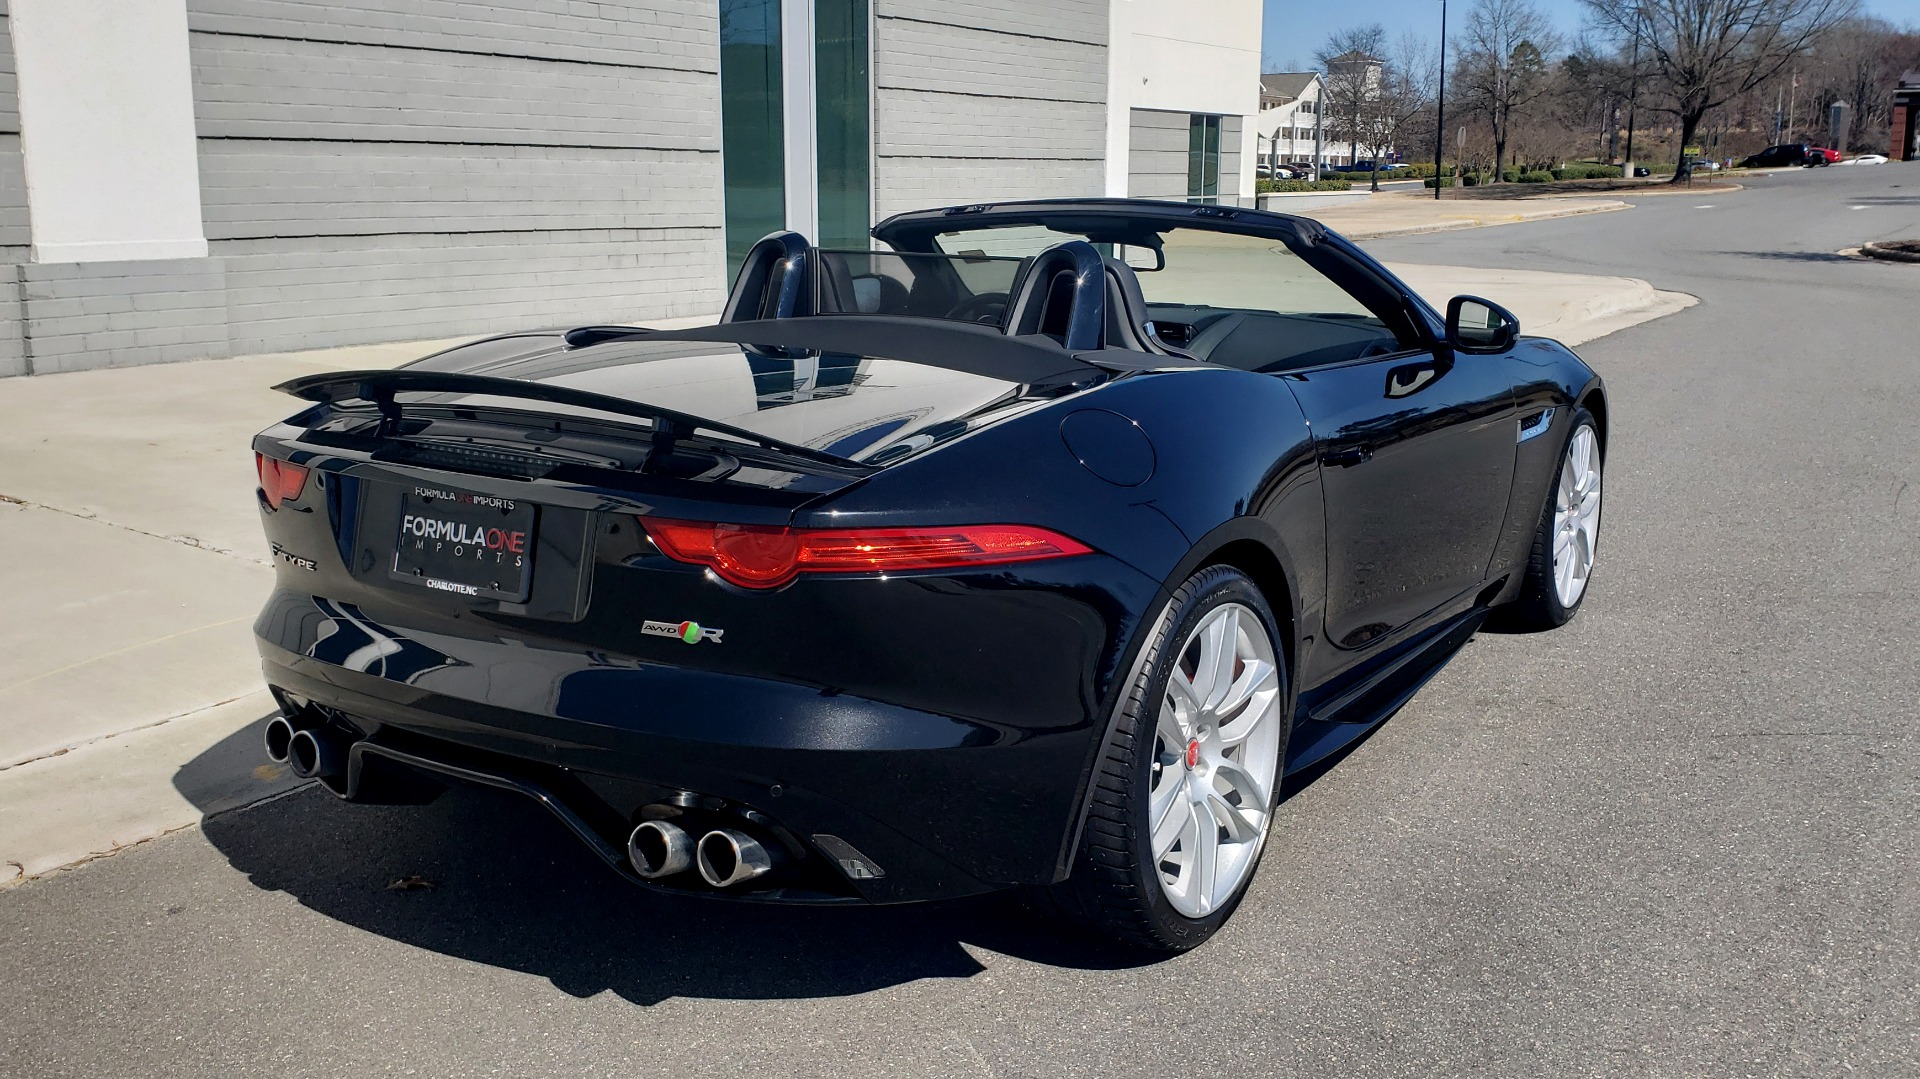 Used 2016 Jaguar F-TYPE R CONVERTIBLE / SC 5.0L 550HP / VISION PACK 3 / BSM / REARVIEW for sale $63,000 at Formula Imports in Charlotte NC 28227 13